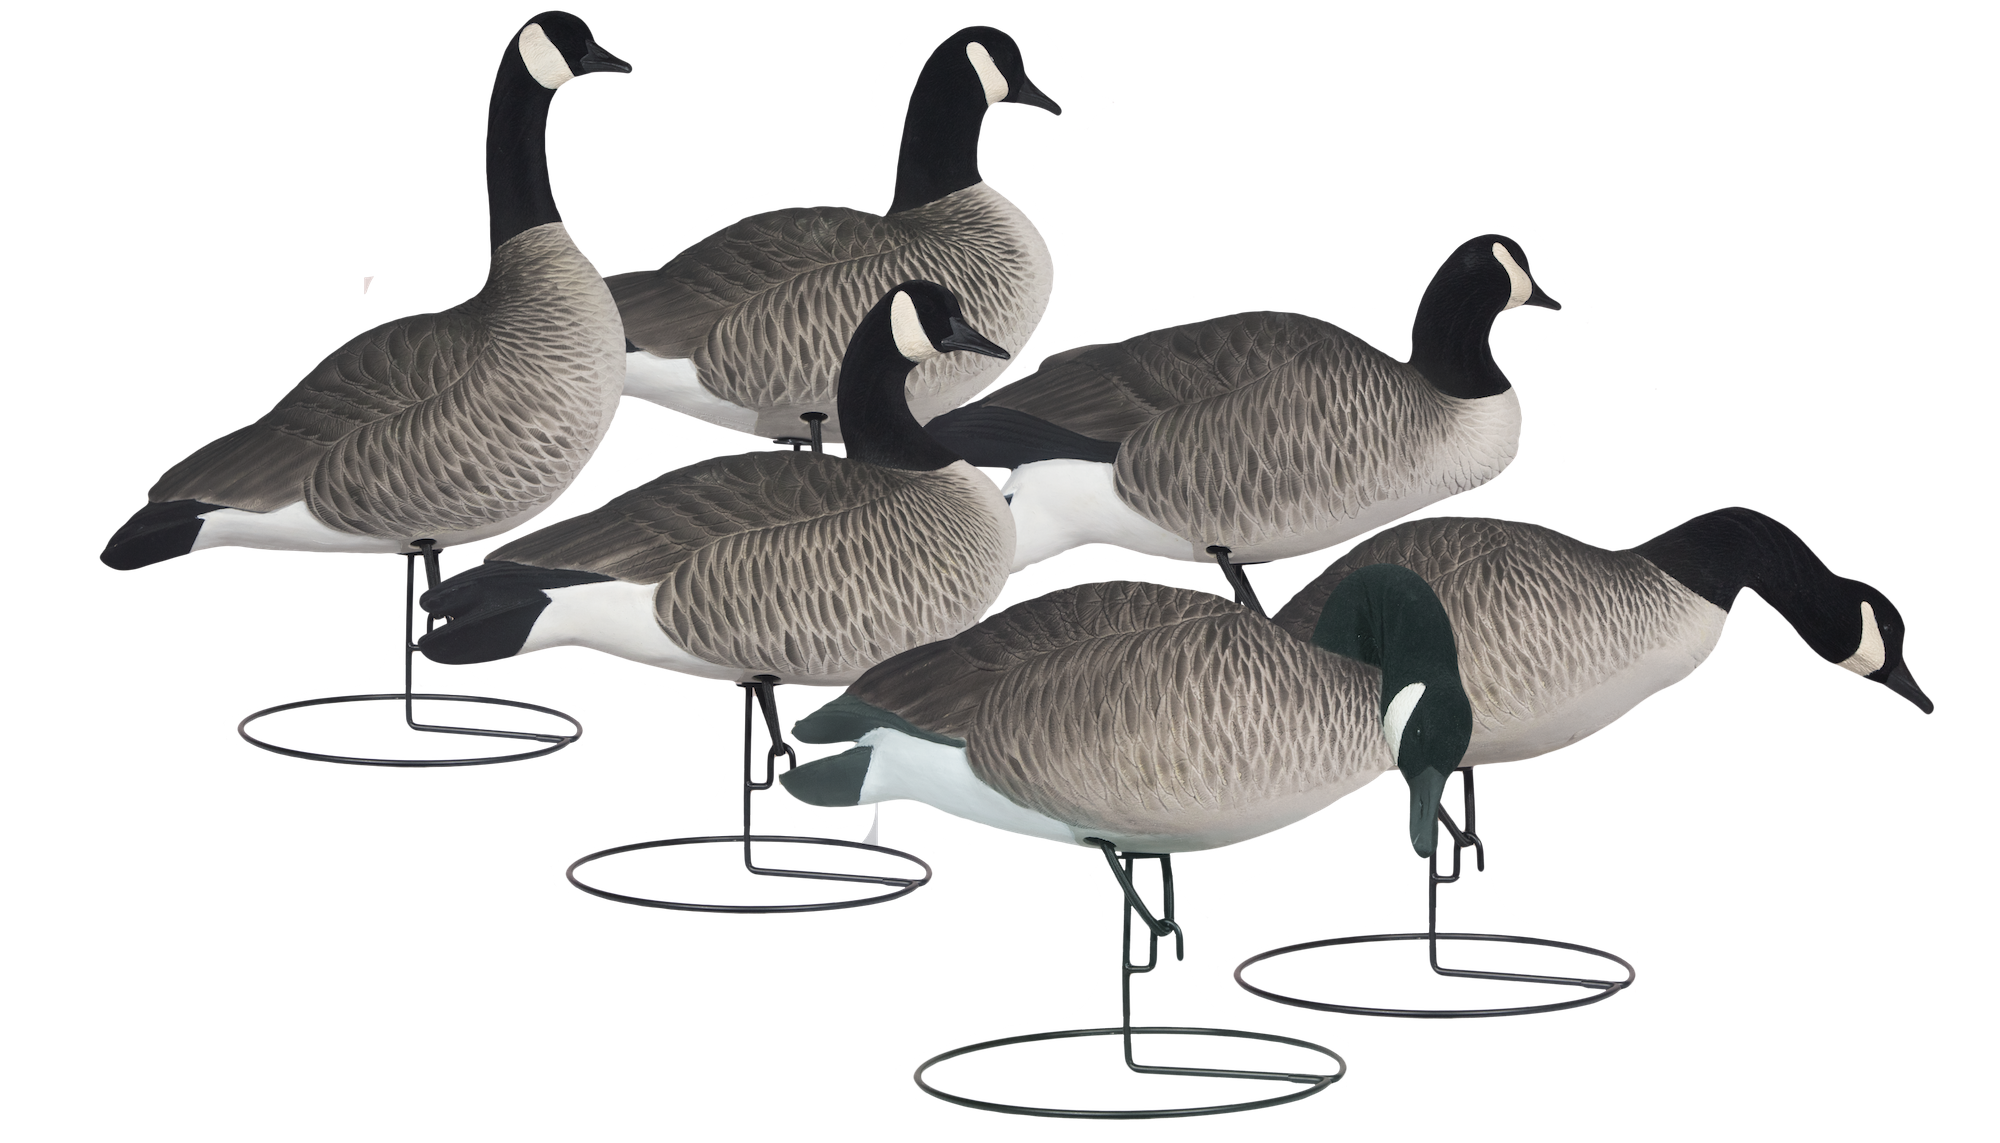 Rugged Series Full Body Canada Goose Decoys - Fully Flocked Feeder & Touchdown Packs